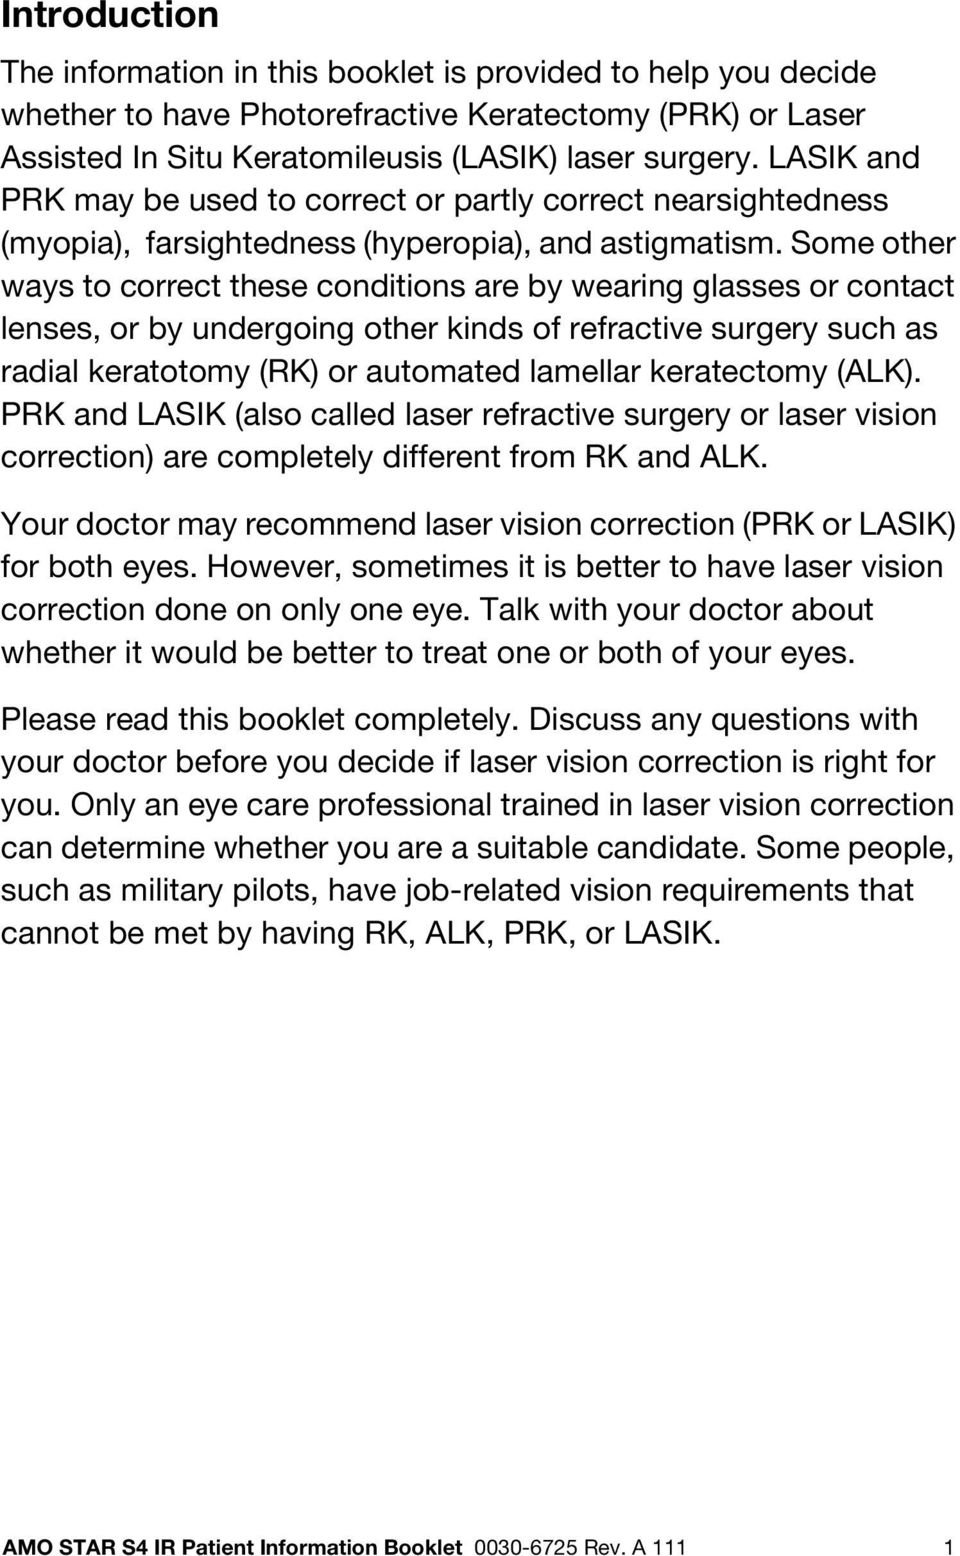 Some other ways to correct these conditions are by wearing glasses or contact lenses, or by undergoing other kinds of refractive surgery such as radial keratotomy (RK) or automated lamellar